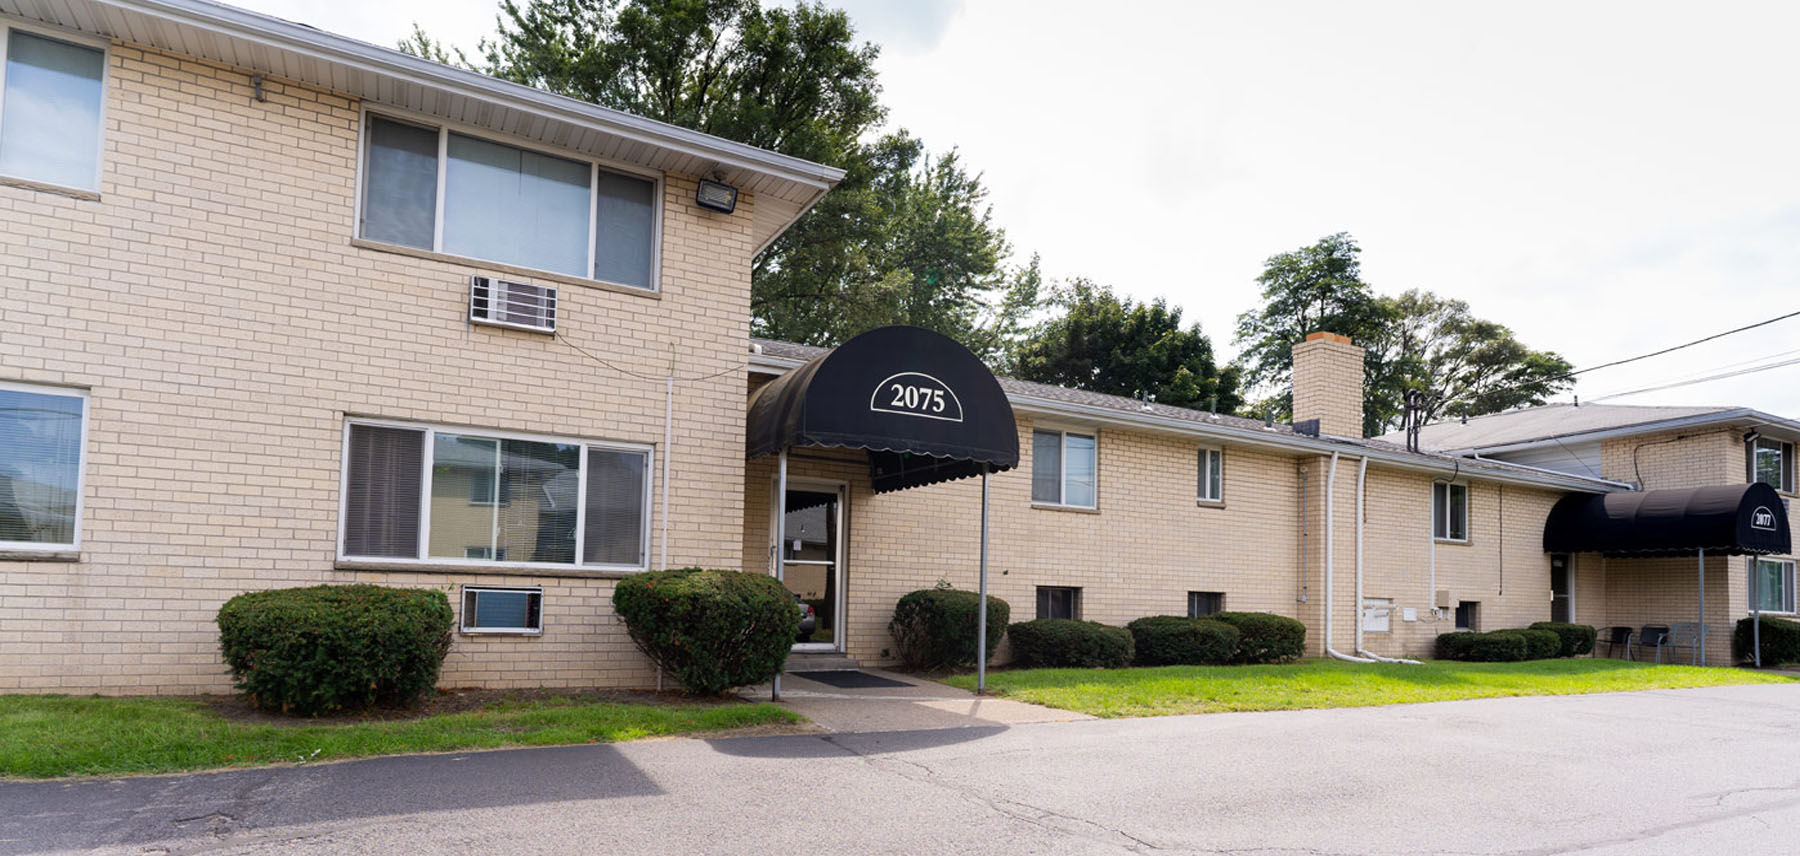 Ivy Ridge Apartments